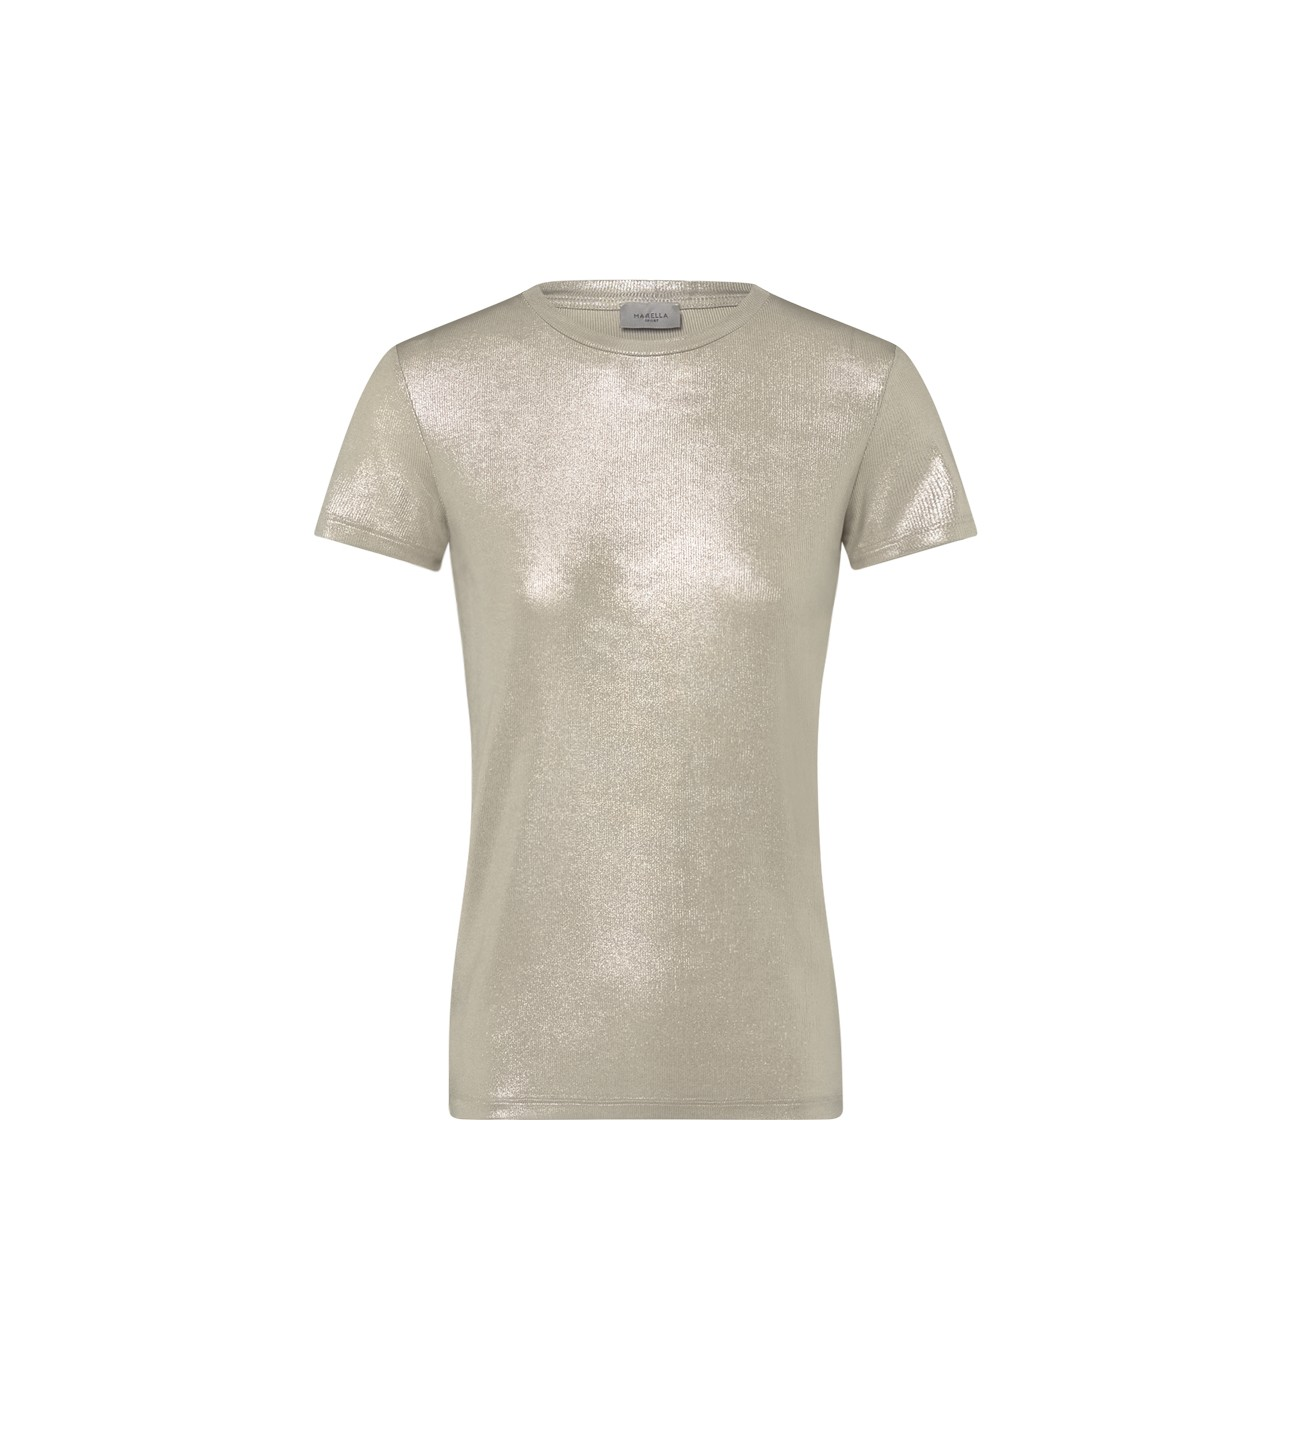 MARELLA_SHORT_SLEEVES_LAME_T-SHIRT_MARIONA_FASHION_CLOTHING_WOMAN_SHOP_ONLINE_VIGNOLA